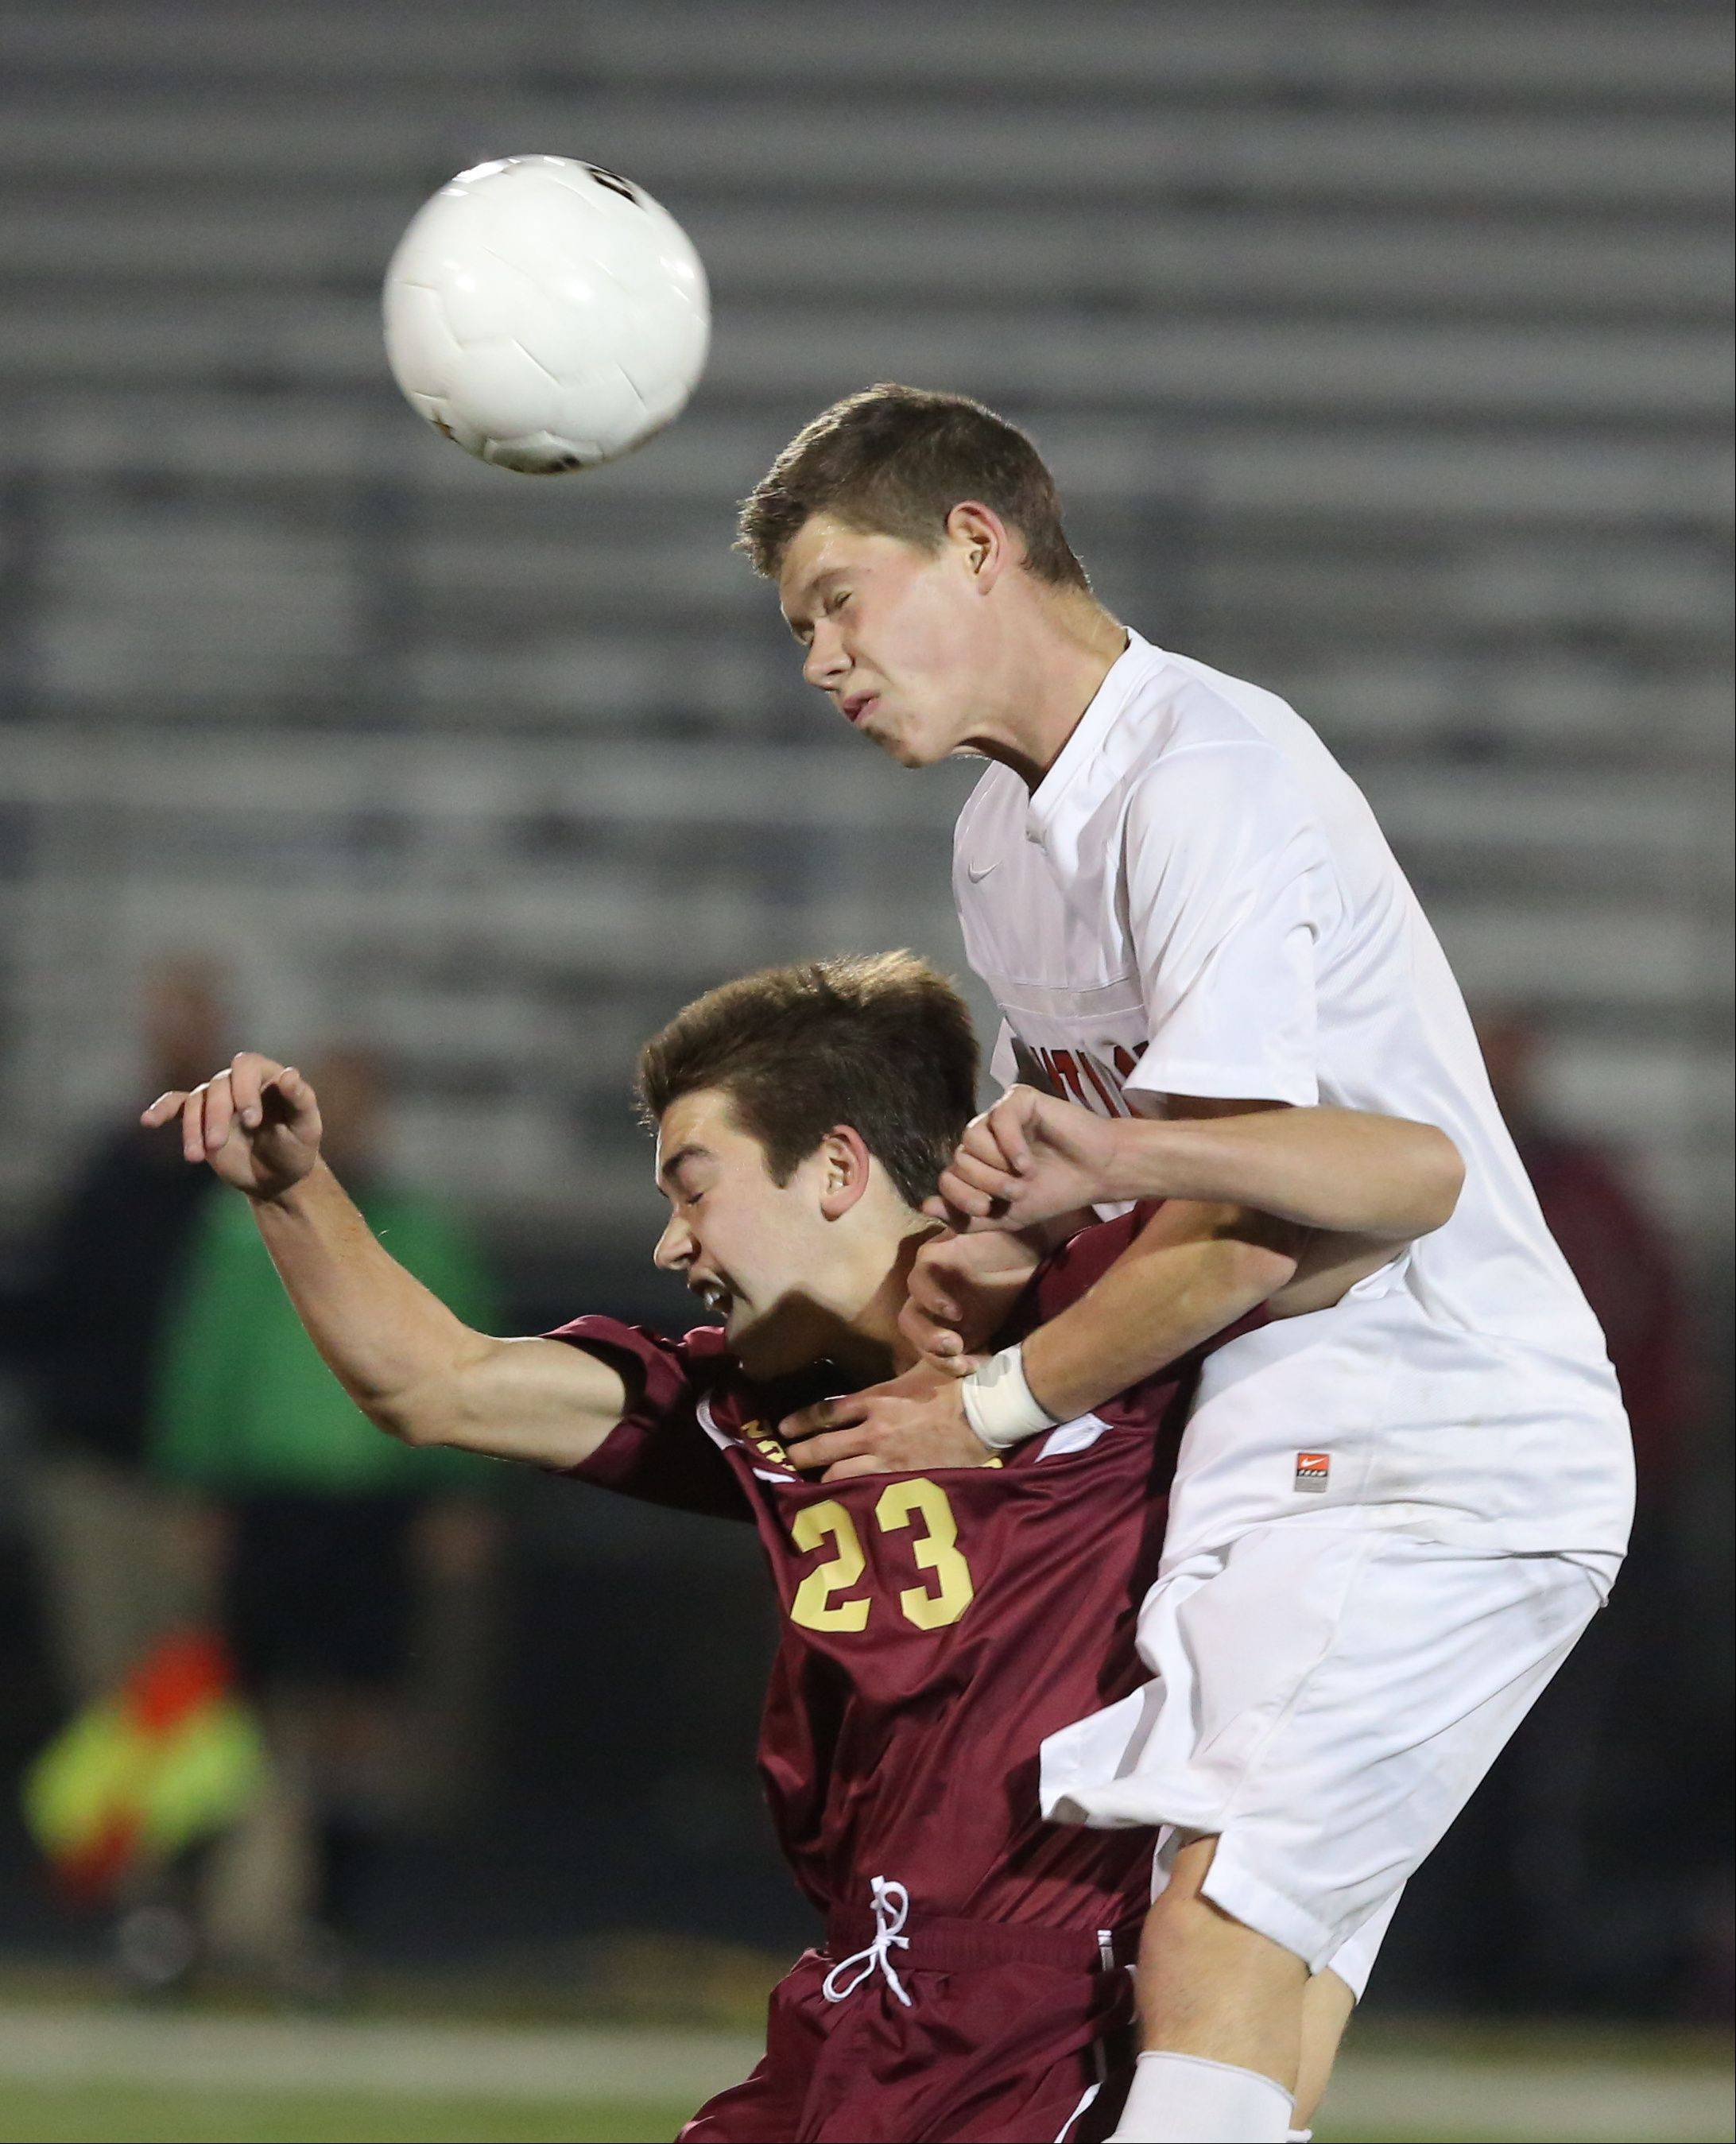 St. Ignatius' Matt Quaas, left, and Antioch's Krystian Streit go up for a header during the Class 2A supersectional Tuesday night at Stevenson.